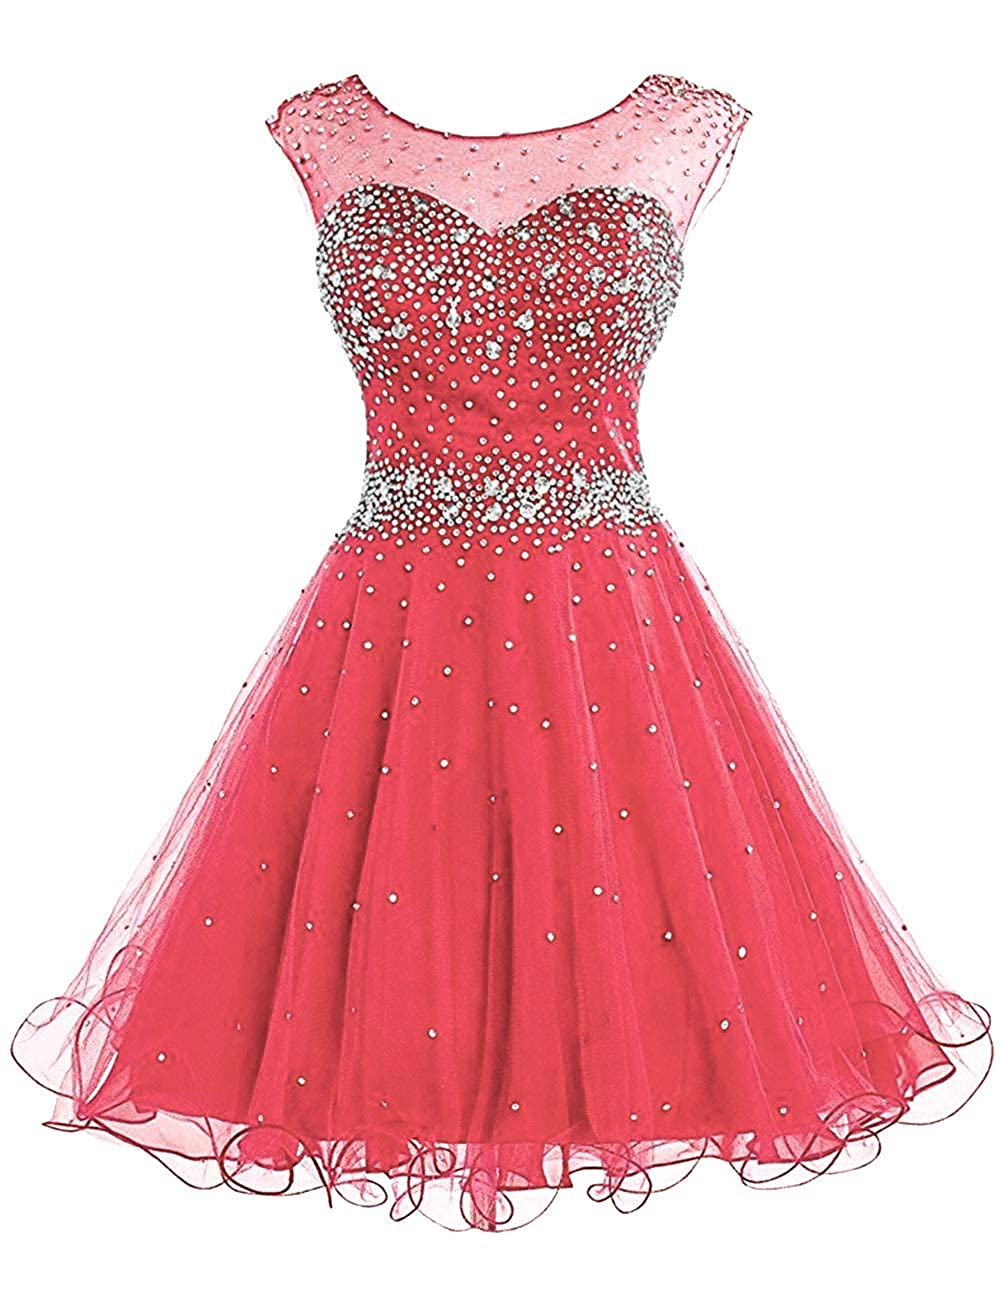 Coral H.S.D Homecoming Dresses Prom Party Dresses Short Cocktail Dress Beads Graduation Gown